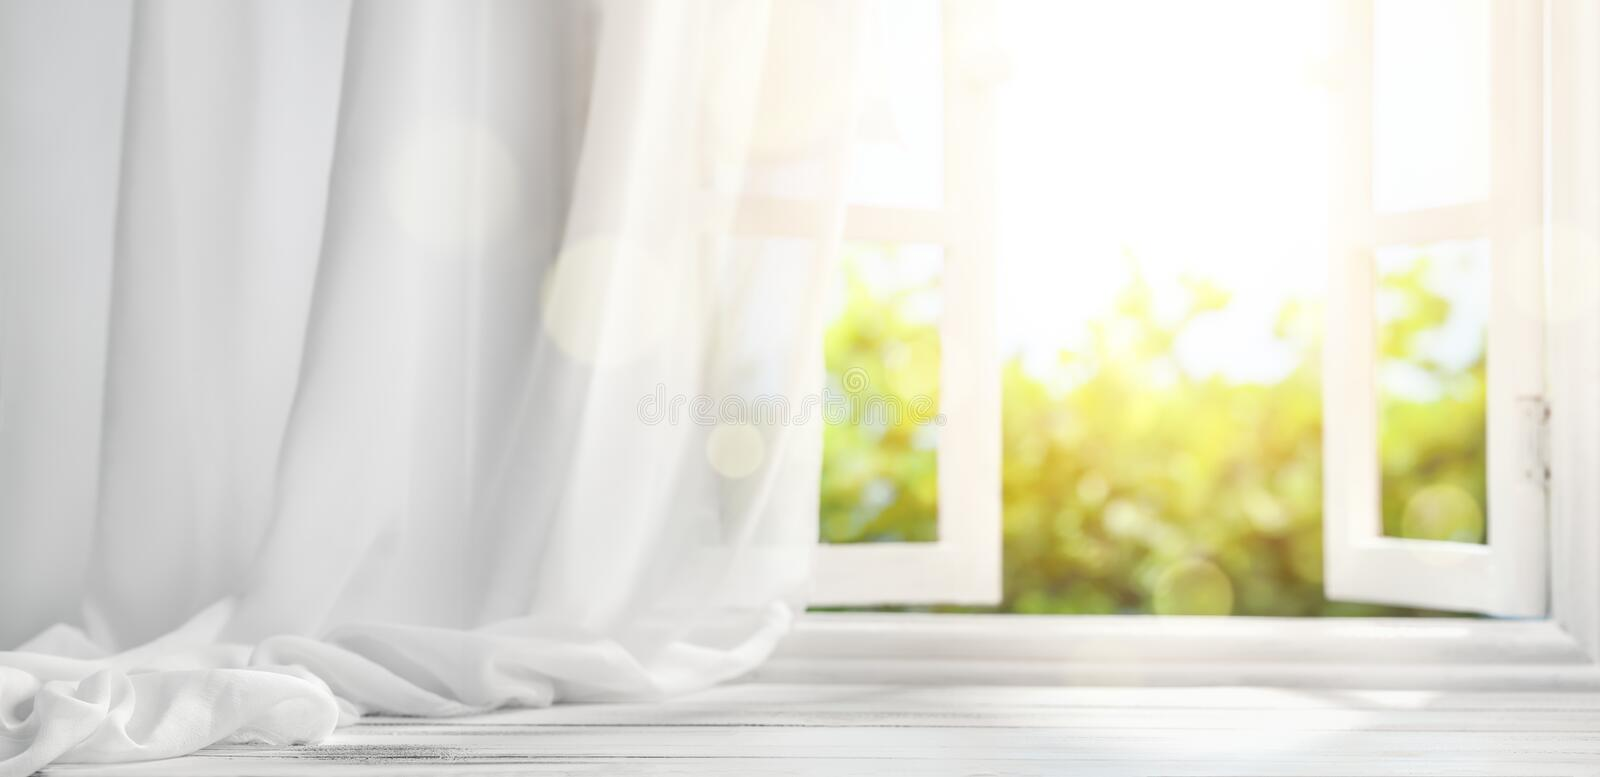 Window with curtain. Interiors background